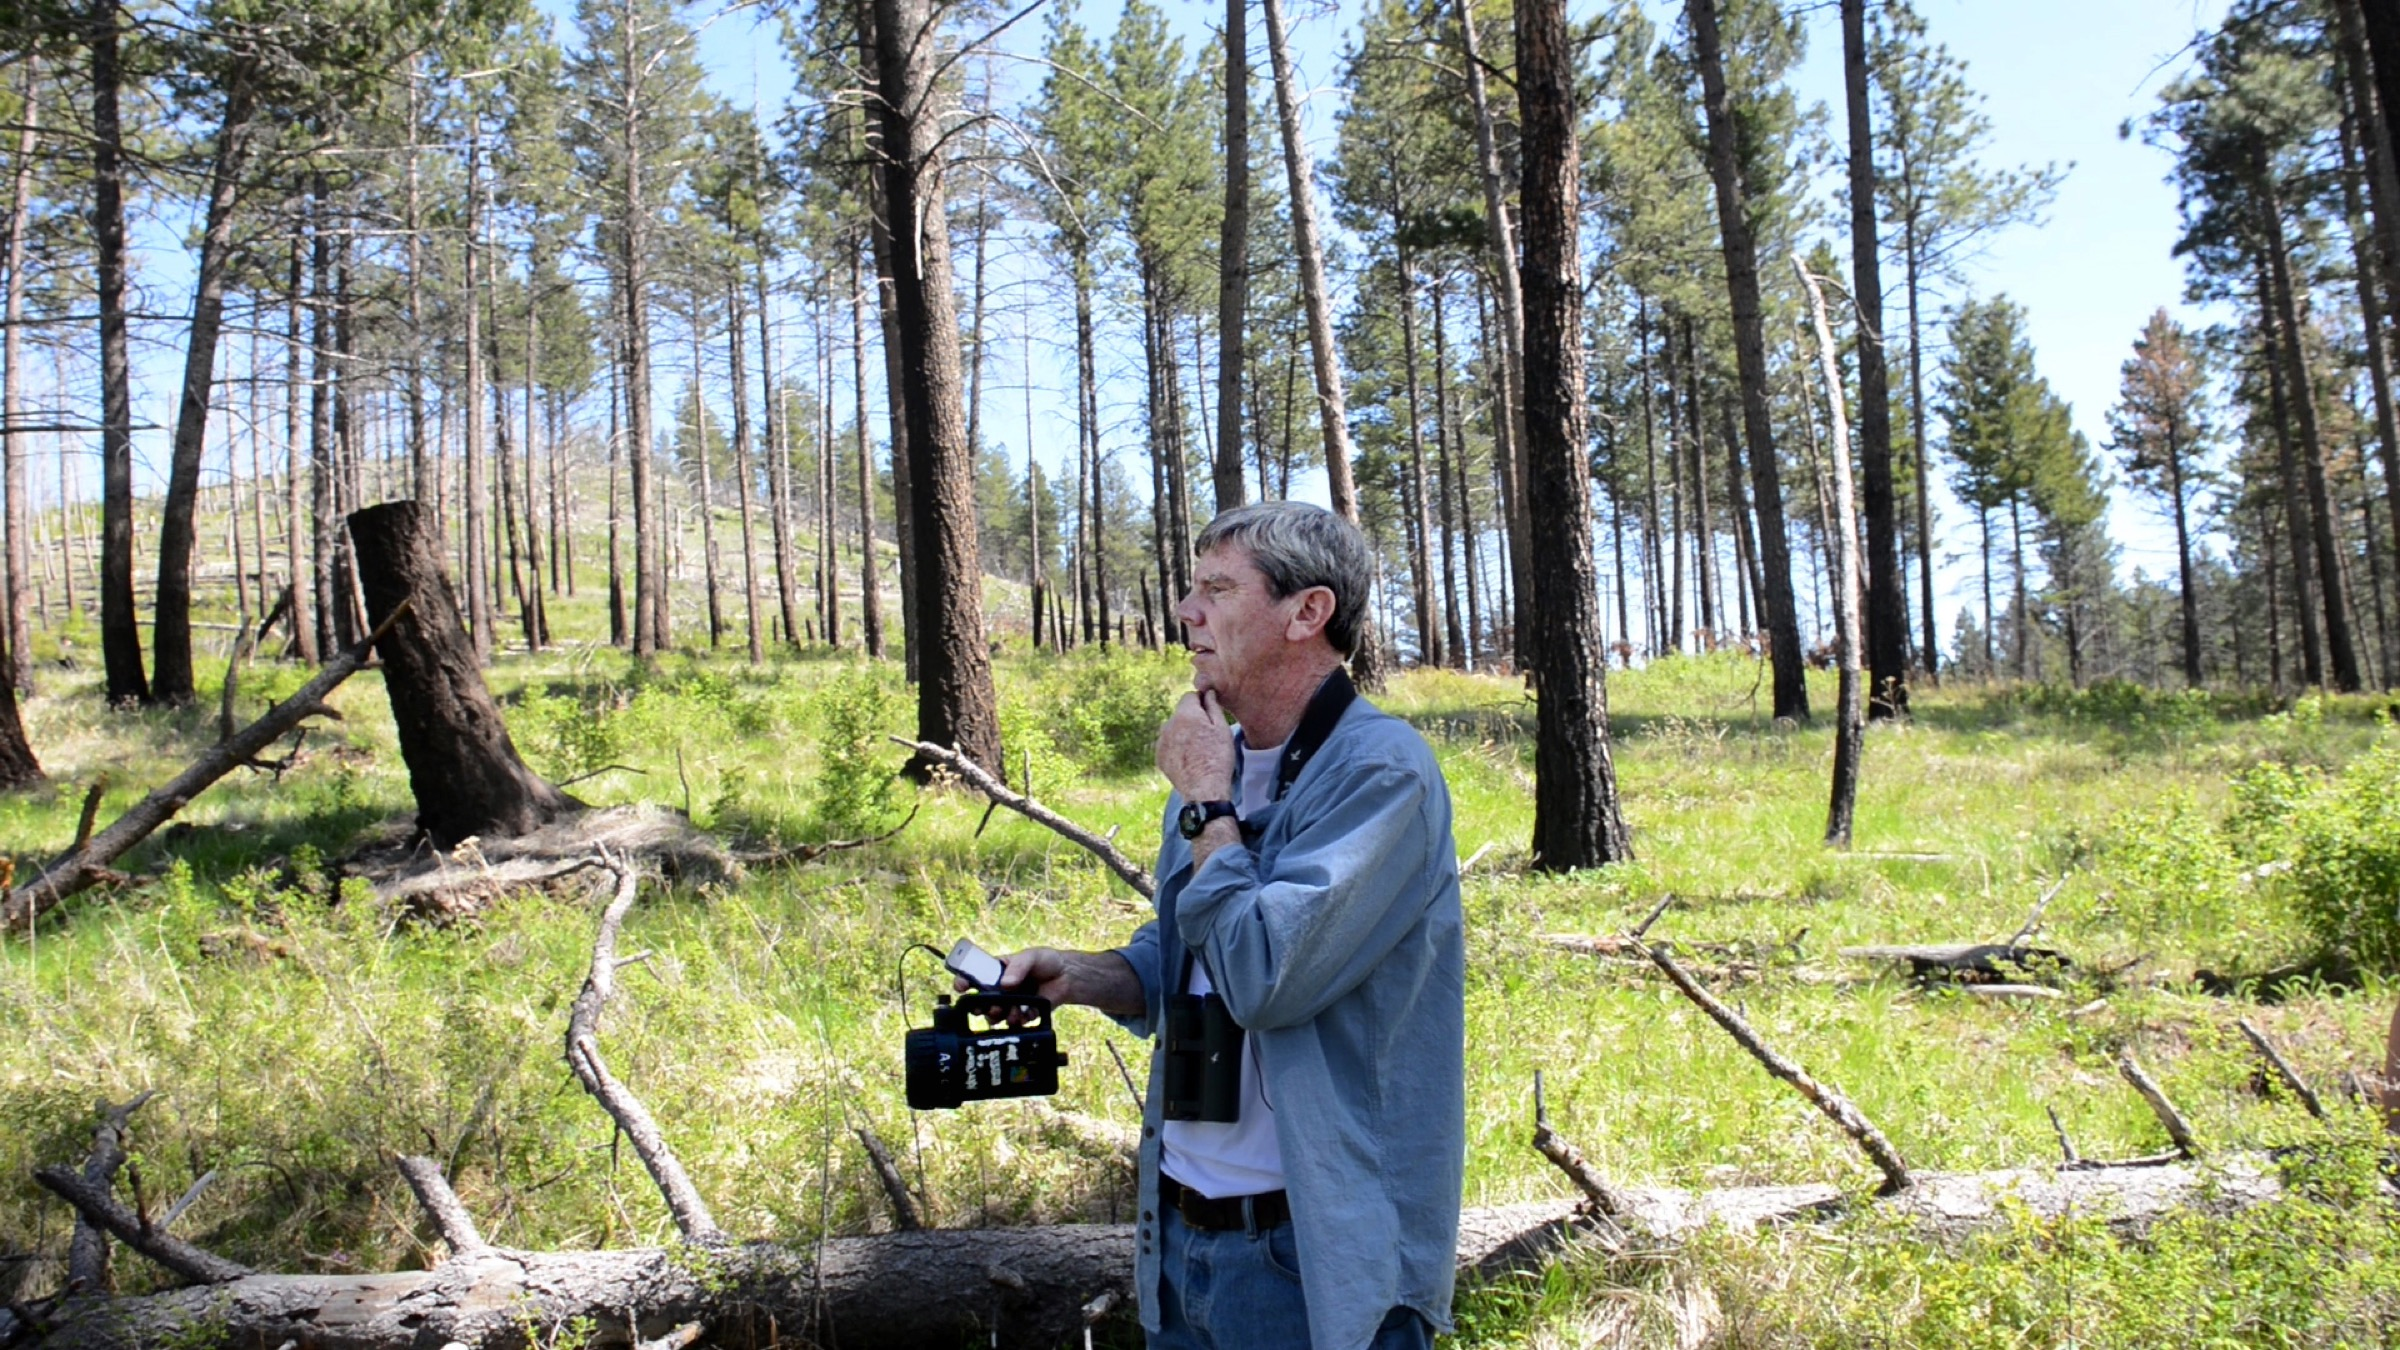 In a snag forest in Montana's Lolo National Forest, wildlife biologist Richard L. Hutto uses a speaker to broadcast the calls and pecks of a black backed woodpecker to draw others of that species. He notes that black-backed woodpeckers are extremely dependent on severely burned forests for their habitat. In turn, the woodpeckers create habitat for other animals. Photograph by Michael Kodas